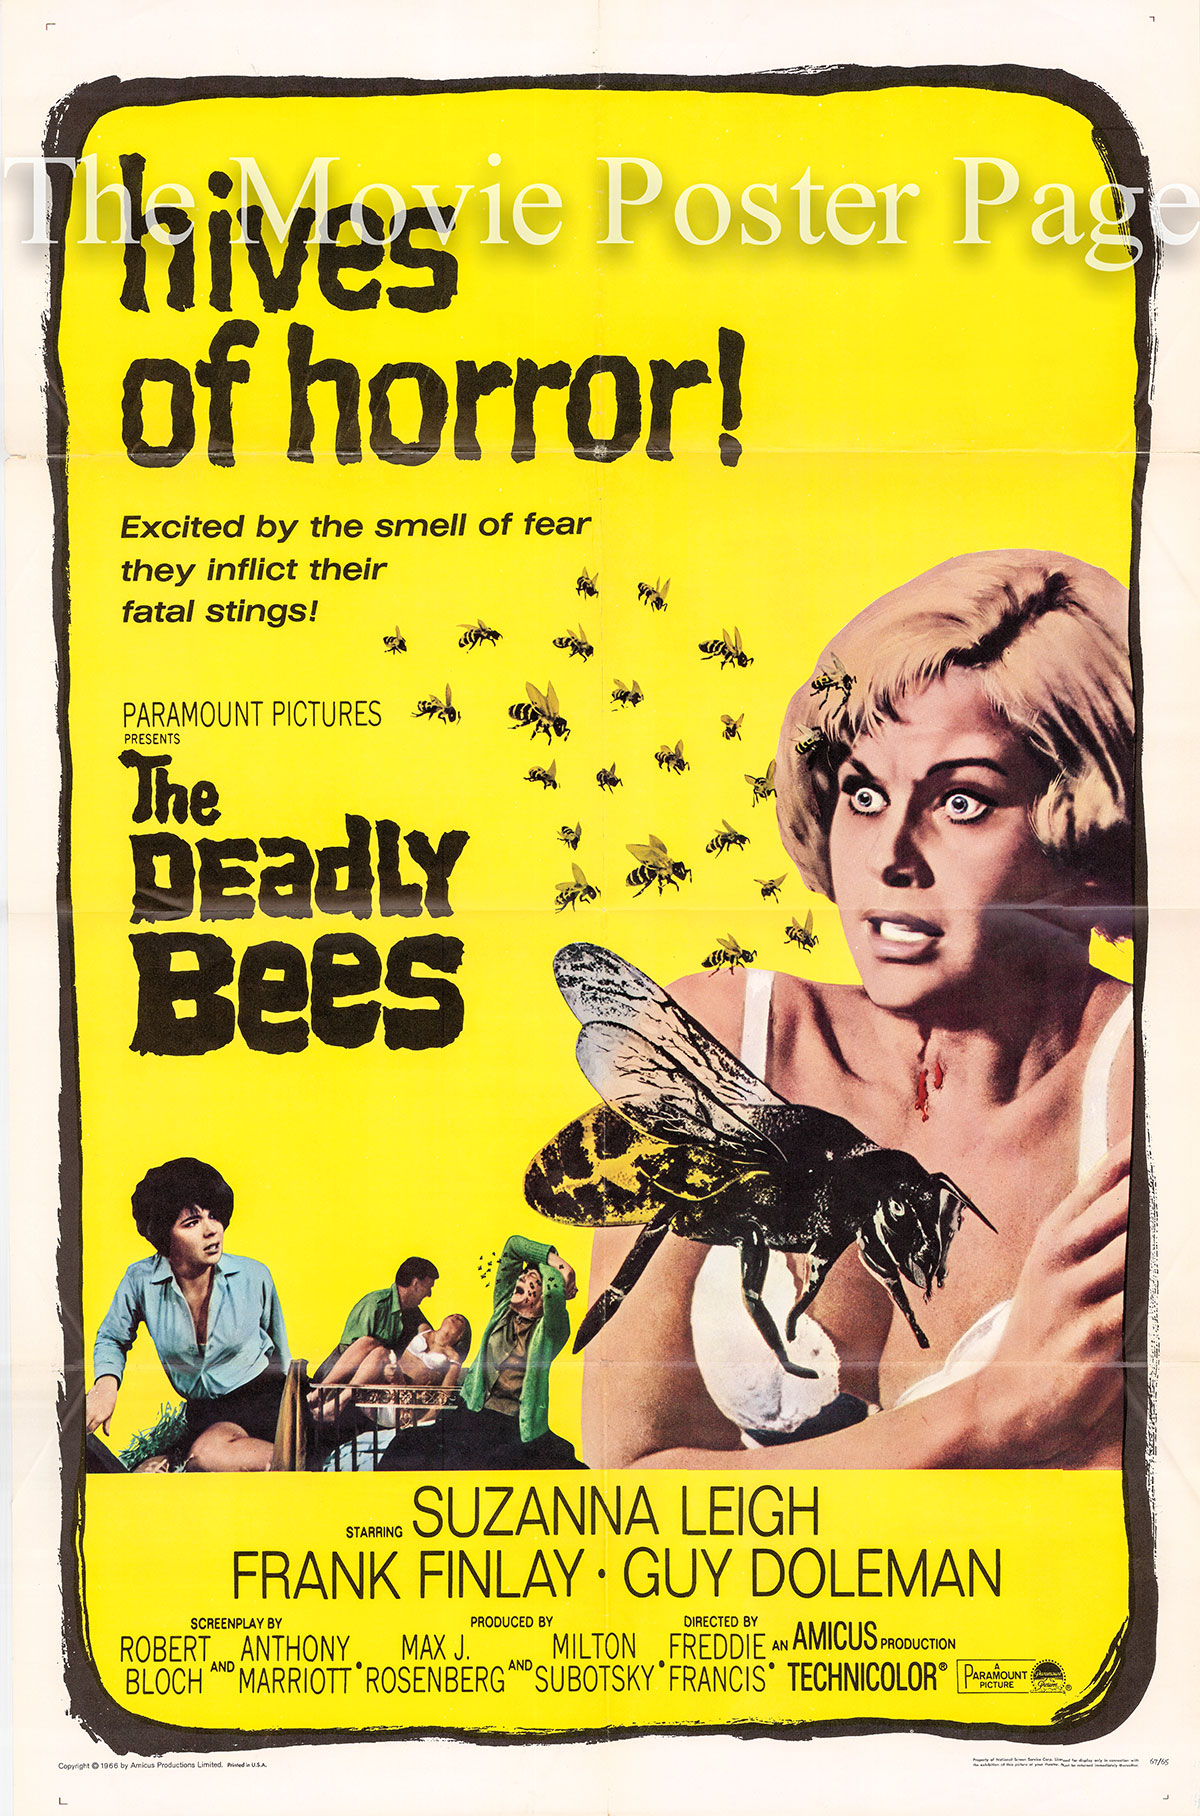 Pictured is a US promotional one-sheet poster for the 1967 Freddie Francis film The Deadly Bees starring Suzanna Leigh as Vicki Robbins.